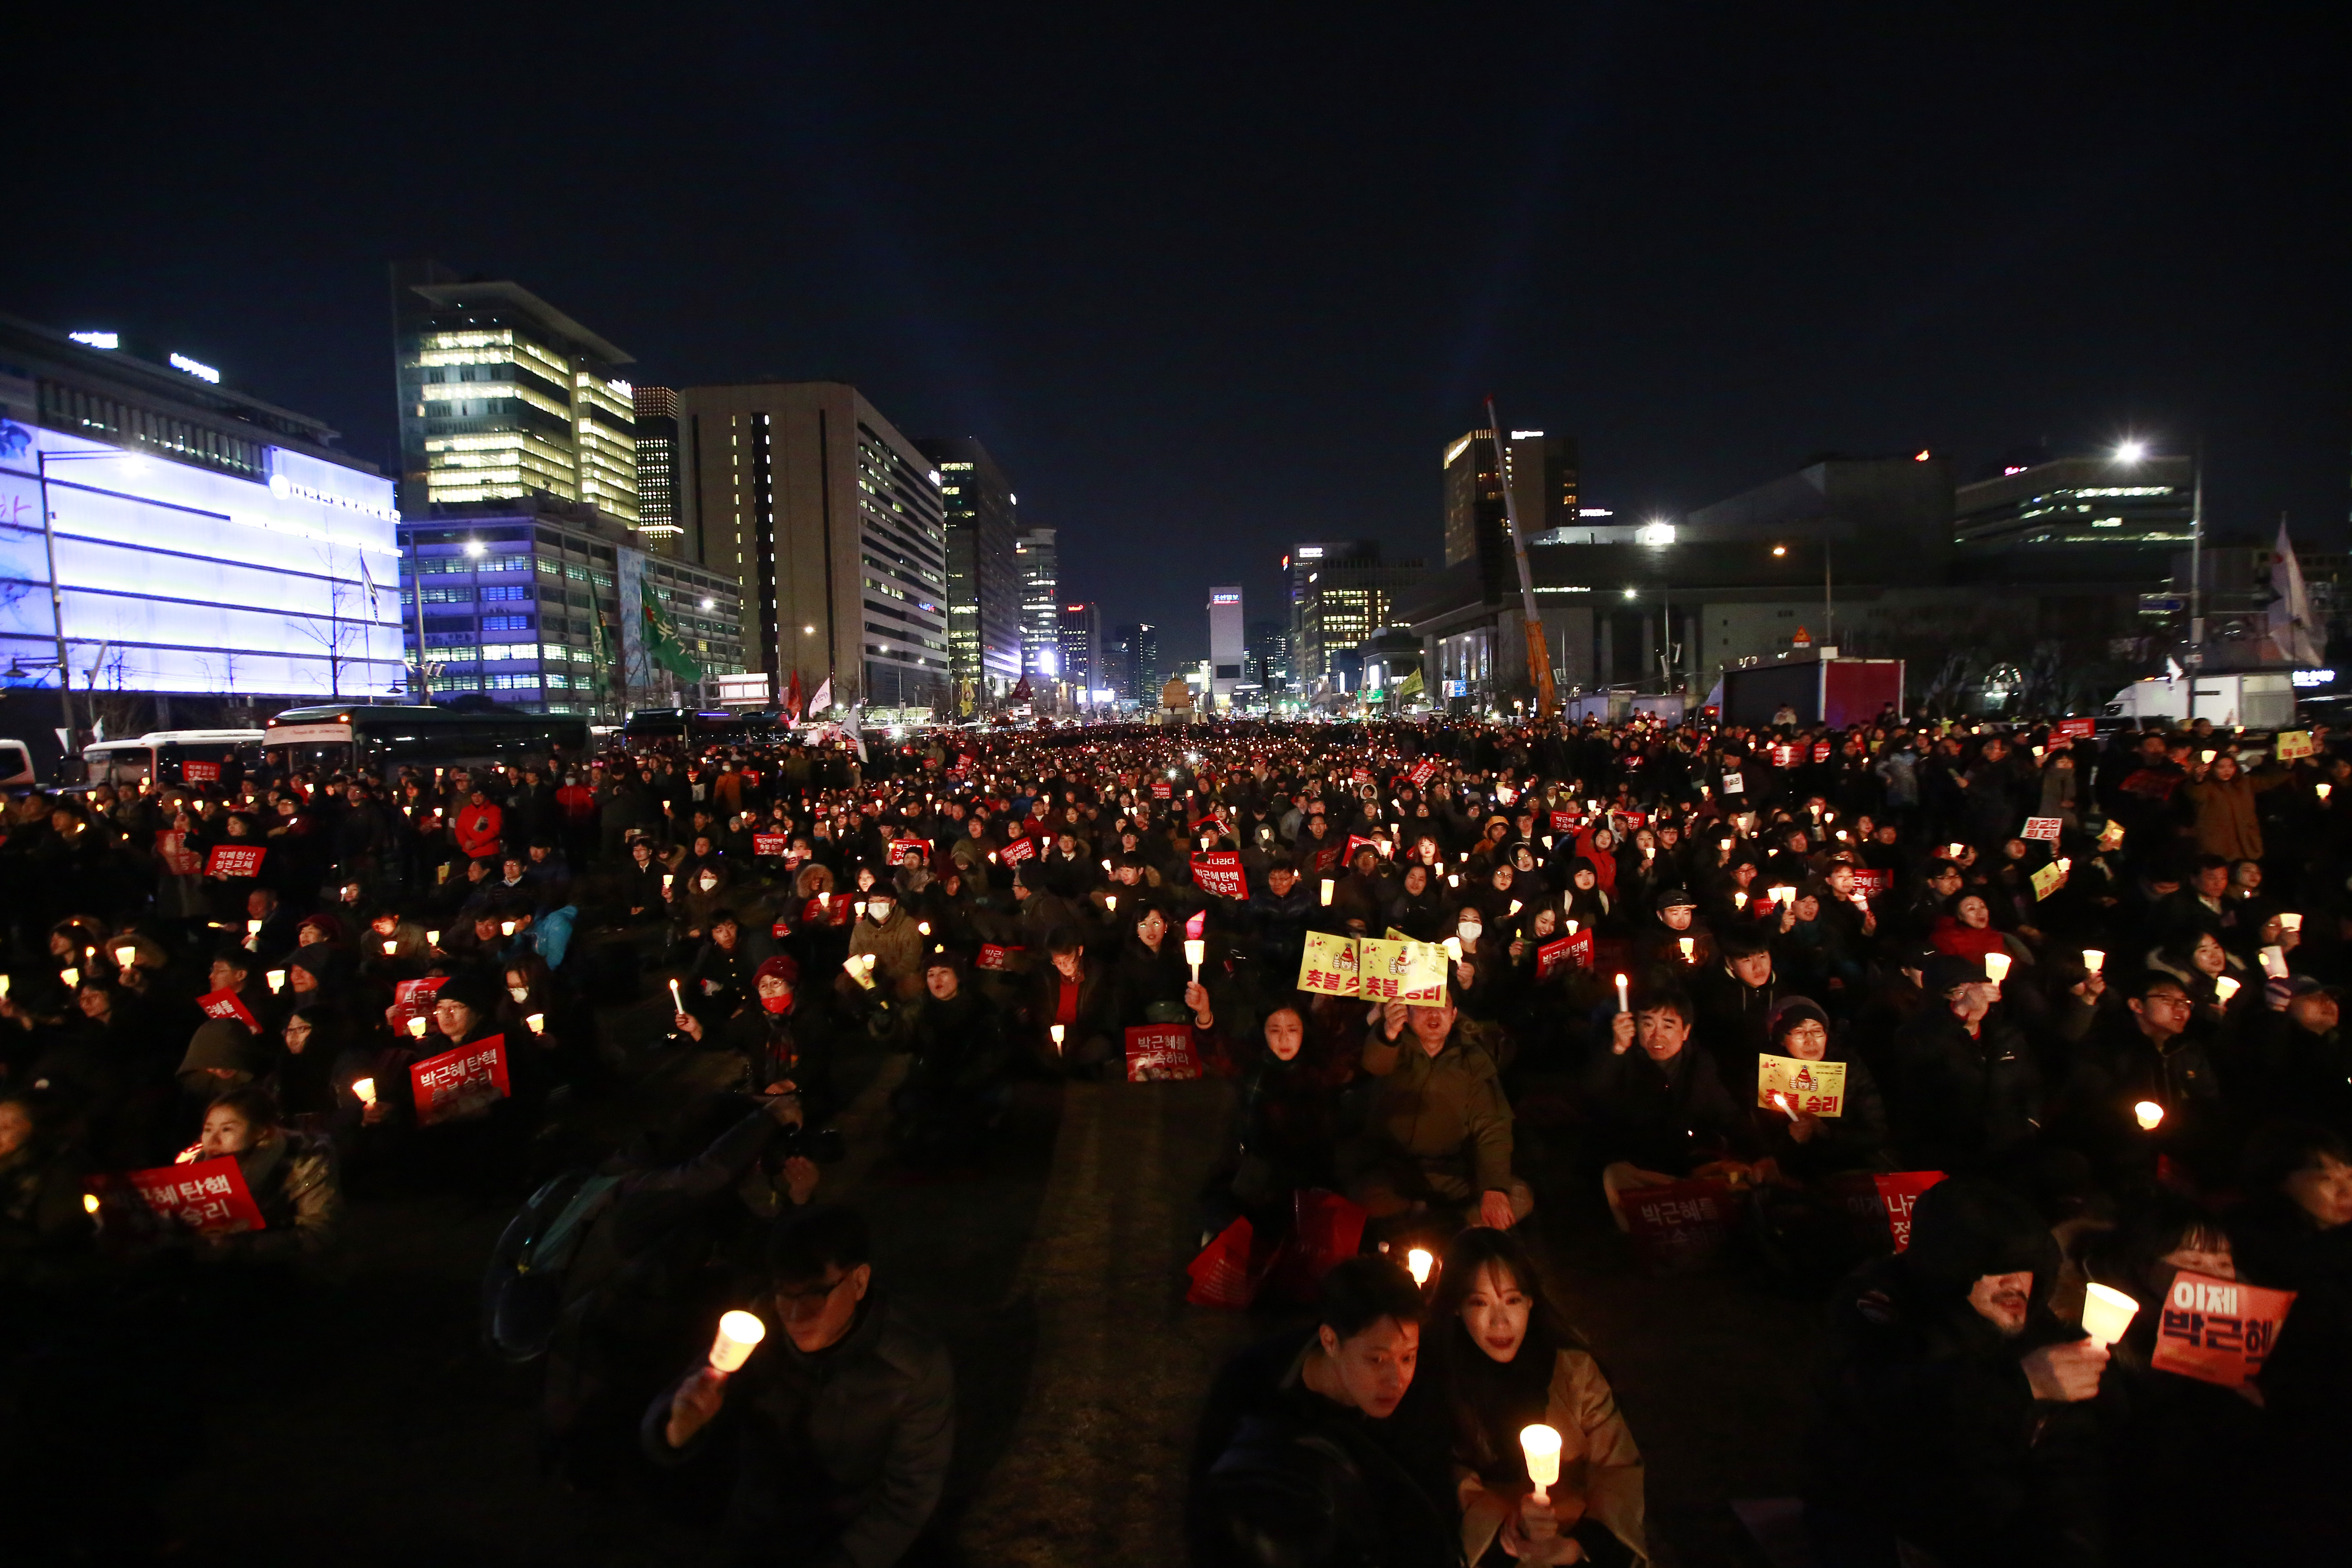 South Koreans gather while holding candles to celebrate after the court's ruling on the impeachment of South Korean President Park Geun-hye in downtown Gwanghwamun in Seoul, South Korea, 10 March 2017. Impeached South Korean President Park Geun-hye is to be permanently removed from office after the Constitutional Court announced its ruling on 10 March. A snap election is expected to take place in early May 2017.Court announces ruling on South Korean President Park impeachment, Seoul, Korea - 10 Mar 2017